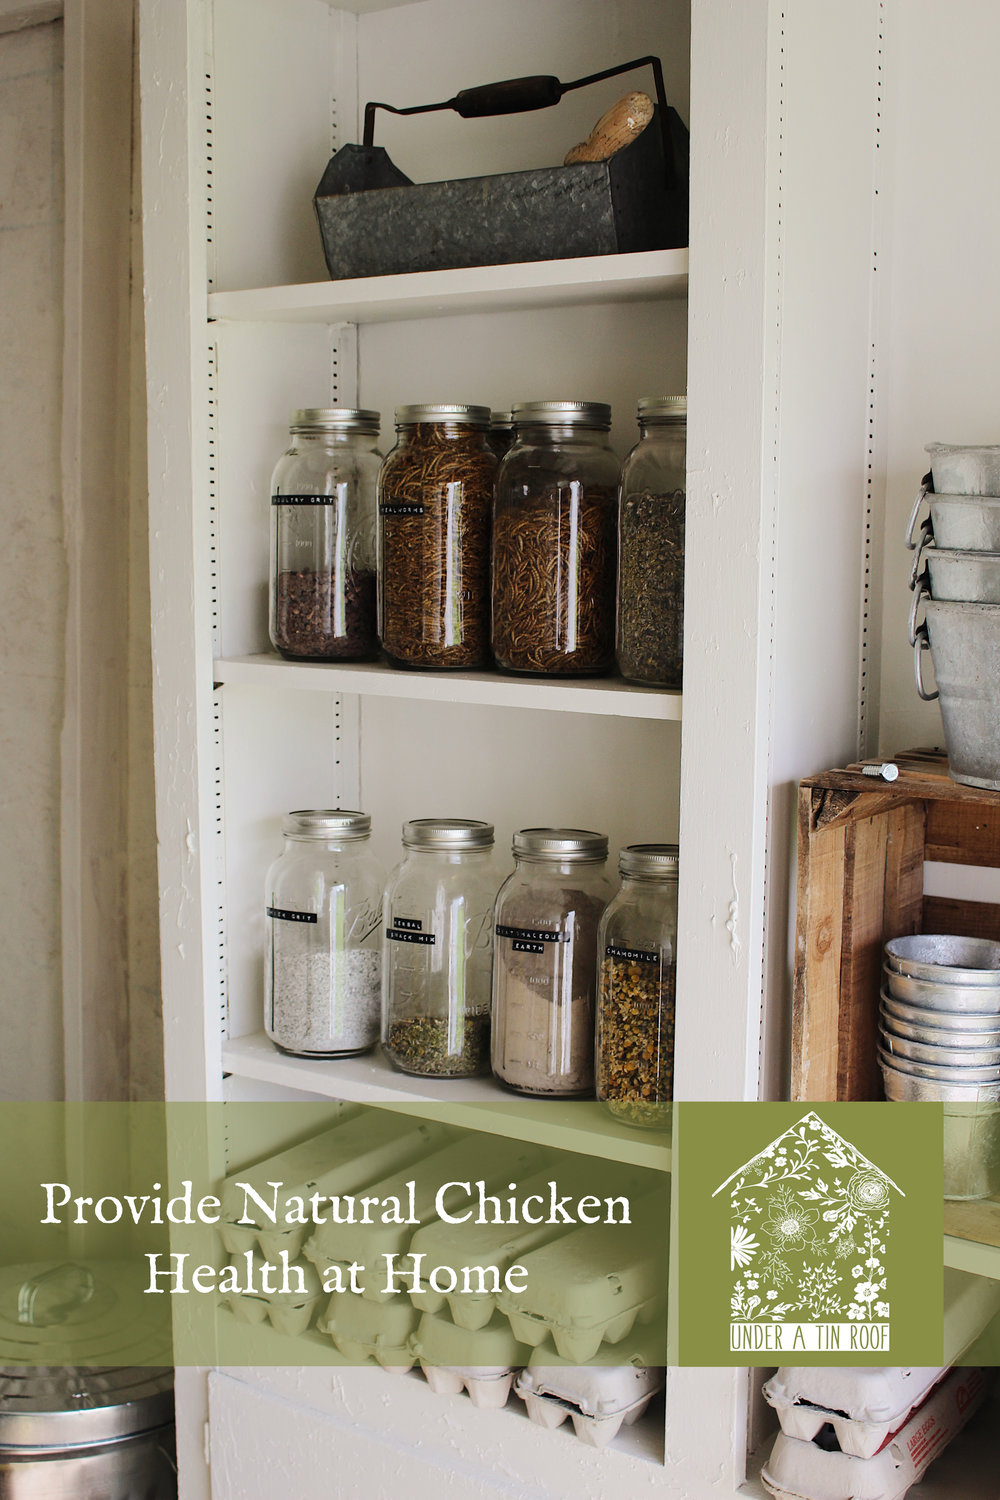 How to Naturally Promote Chicken Health at Home - Under A Tin Roof Blog